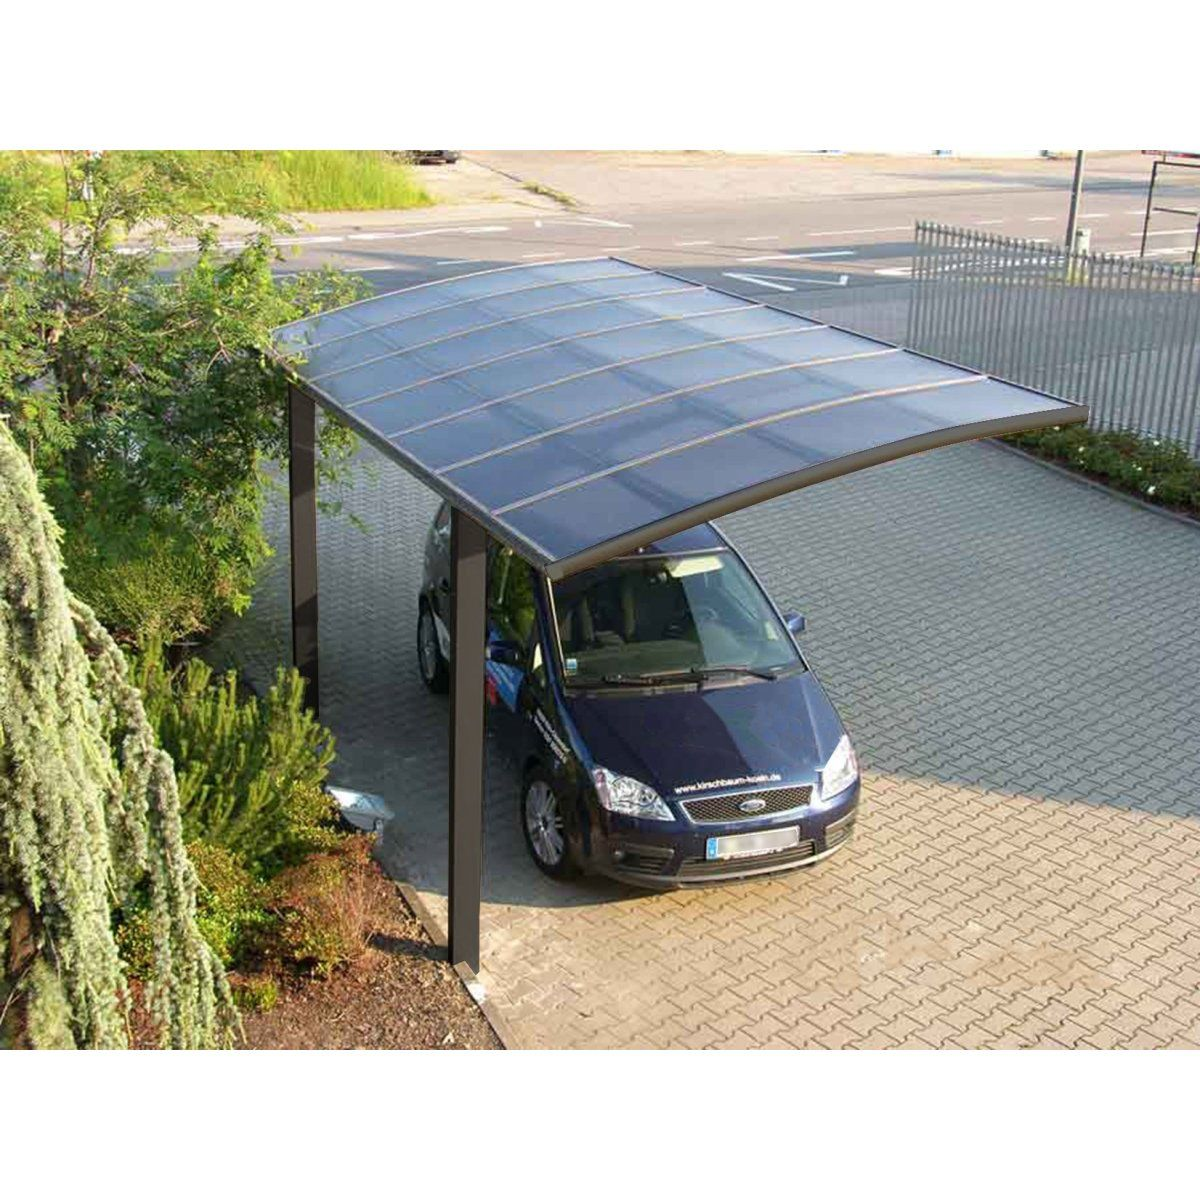 This Free Standing Cantilevered Carport Is A Stunning Addition To Any Property With Its Floating Design And Slee Cantilever Carport Carport Canopy Car Canopy